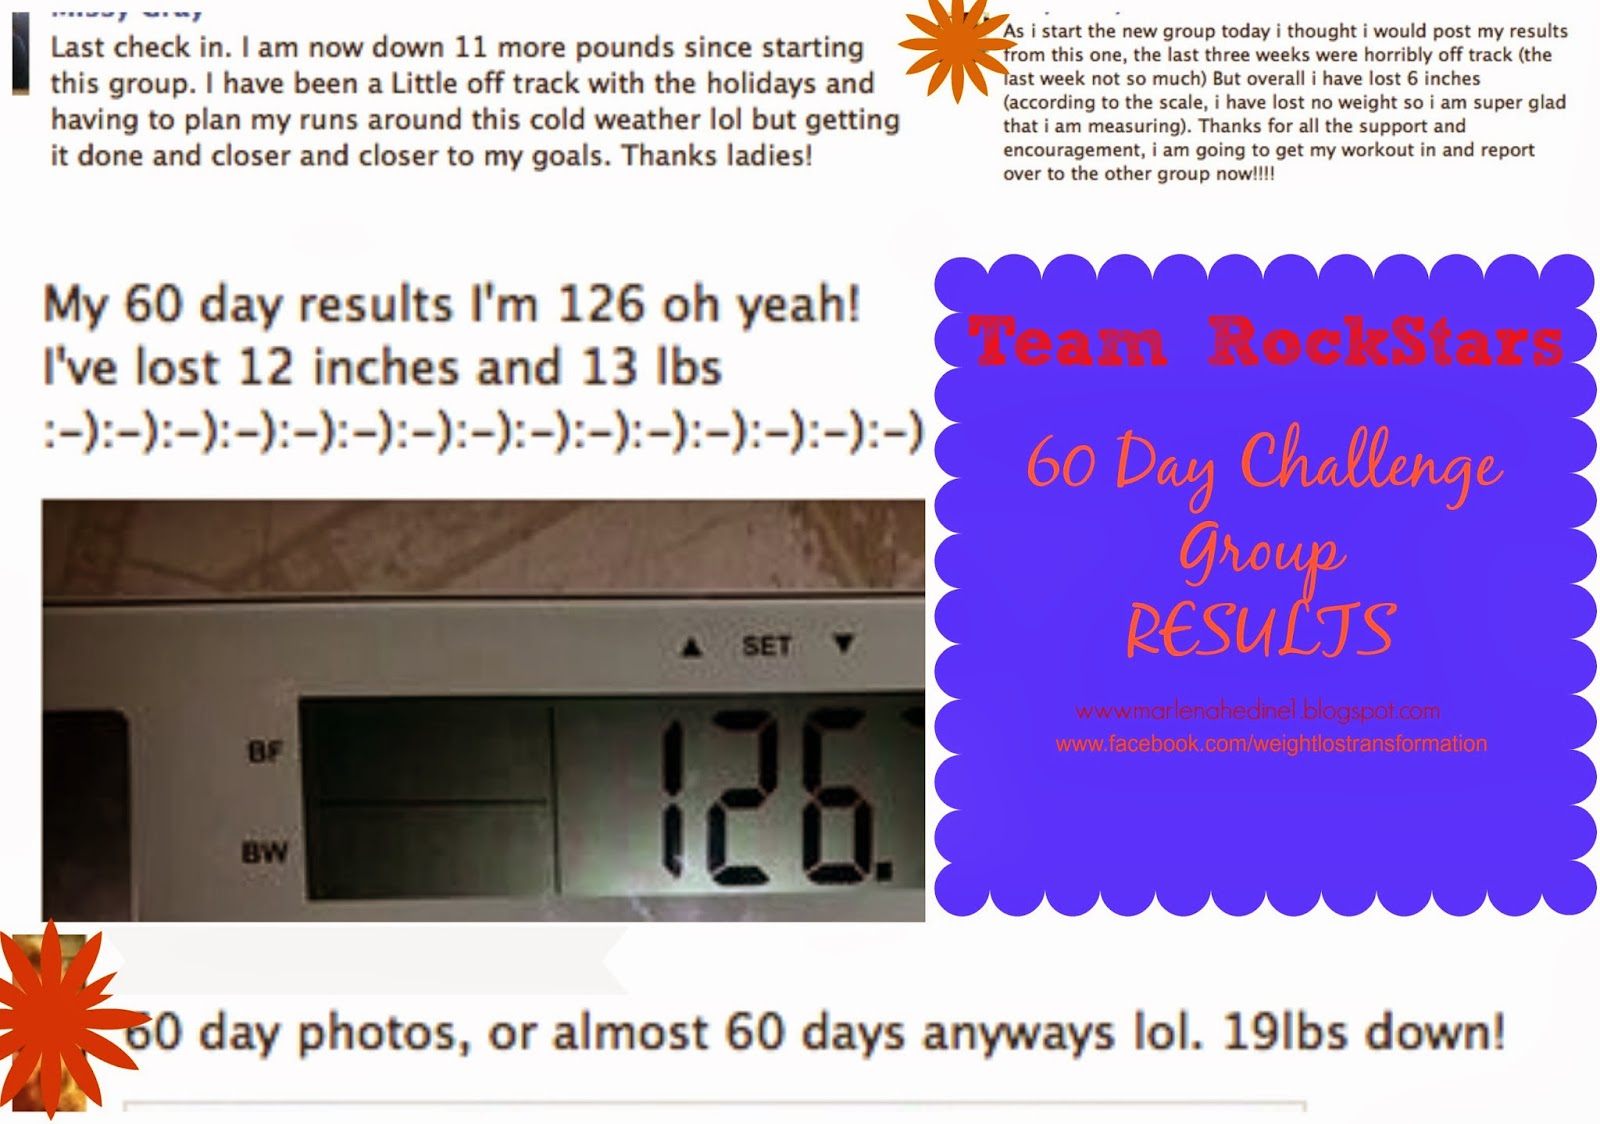 challenge group results, weighloss results, loose weight, drop pounds